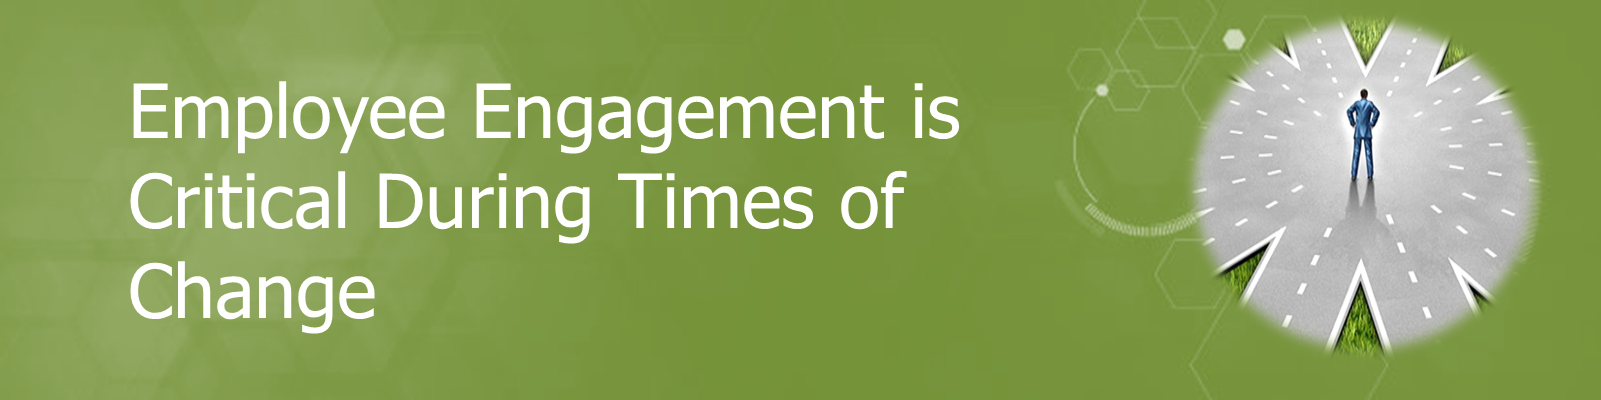 Employee Engagement is critical during times of change